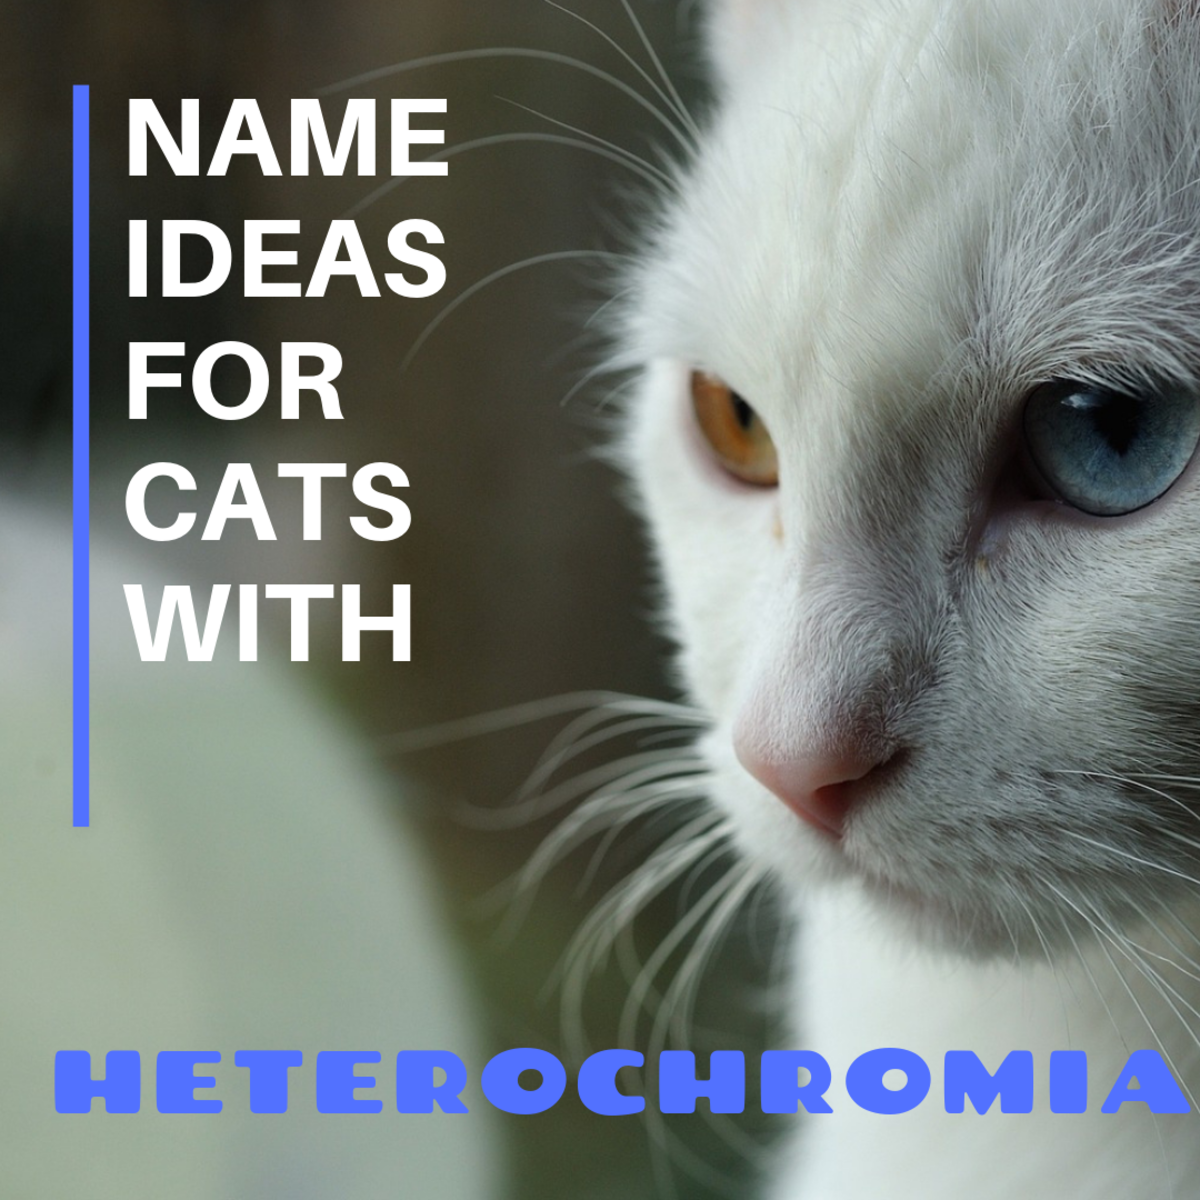 Name ideas for cats with odd eyes